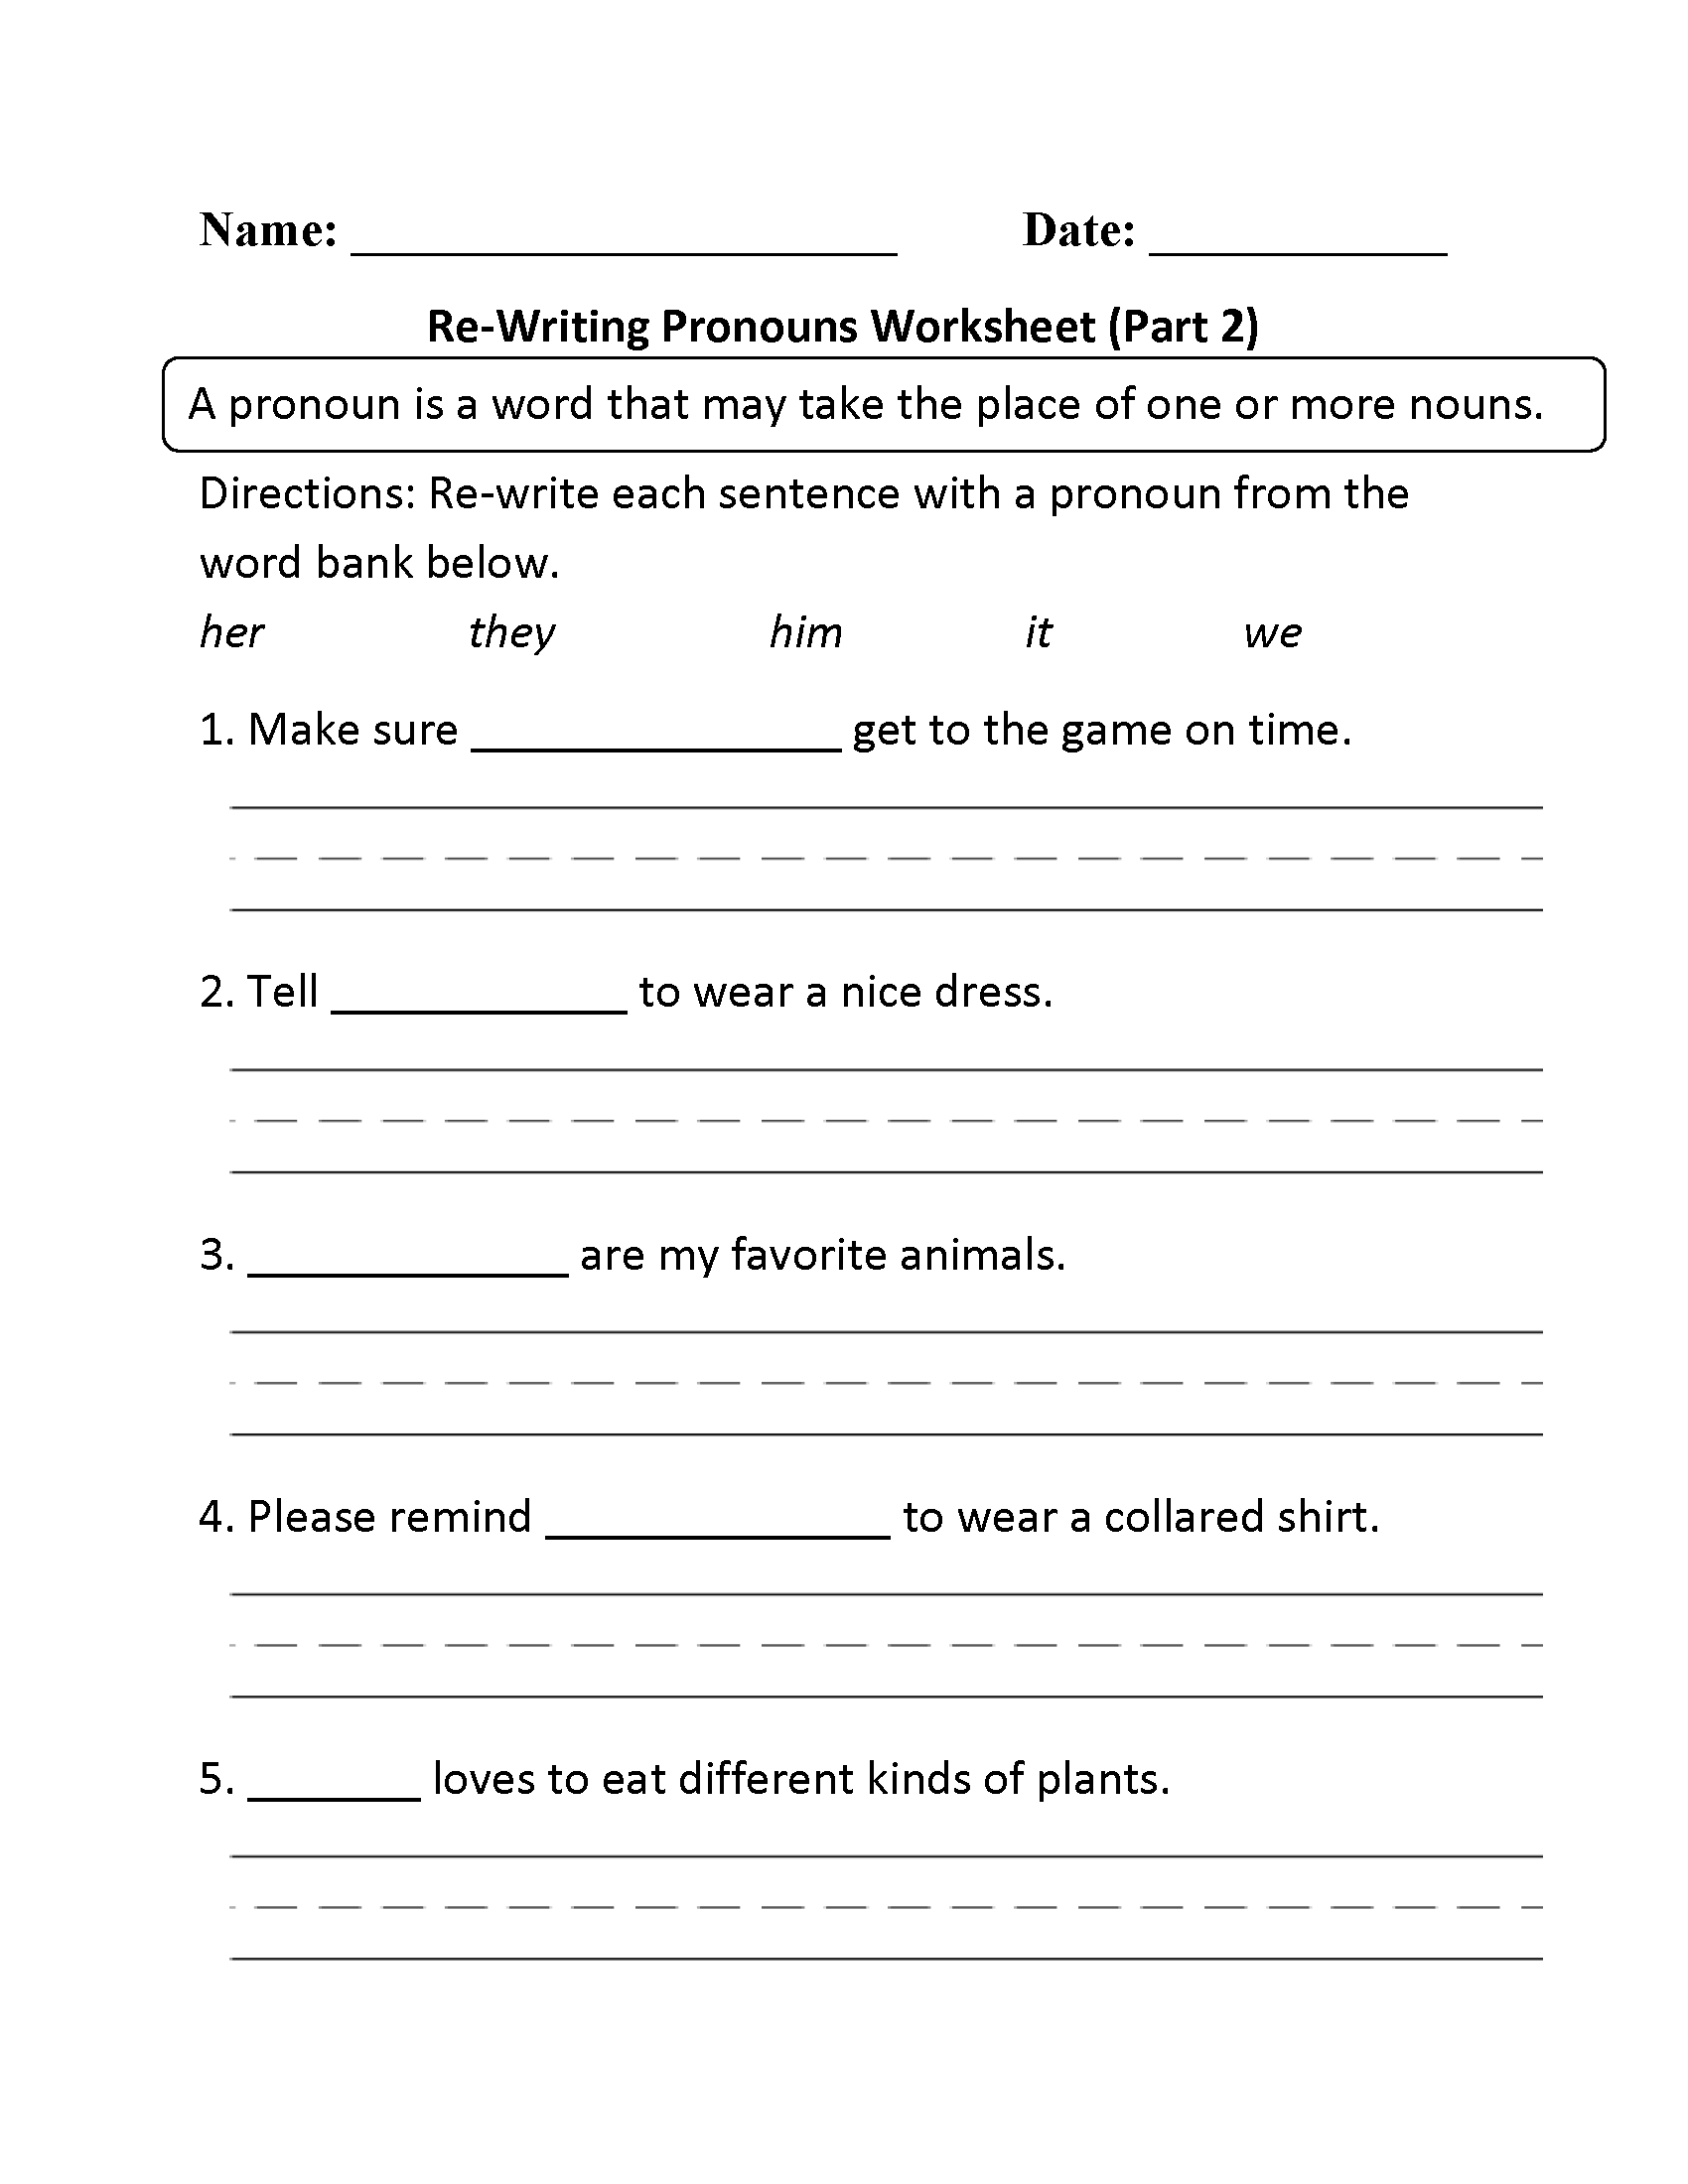 Regular Pronouns Worksheets : Re-Writing Pronouns Worksheet Part 2